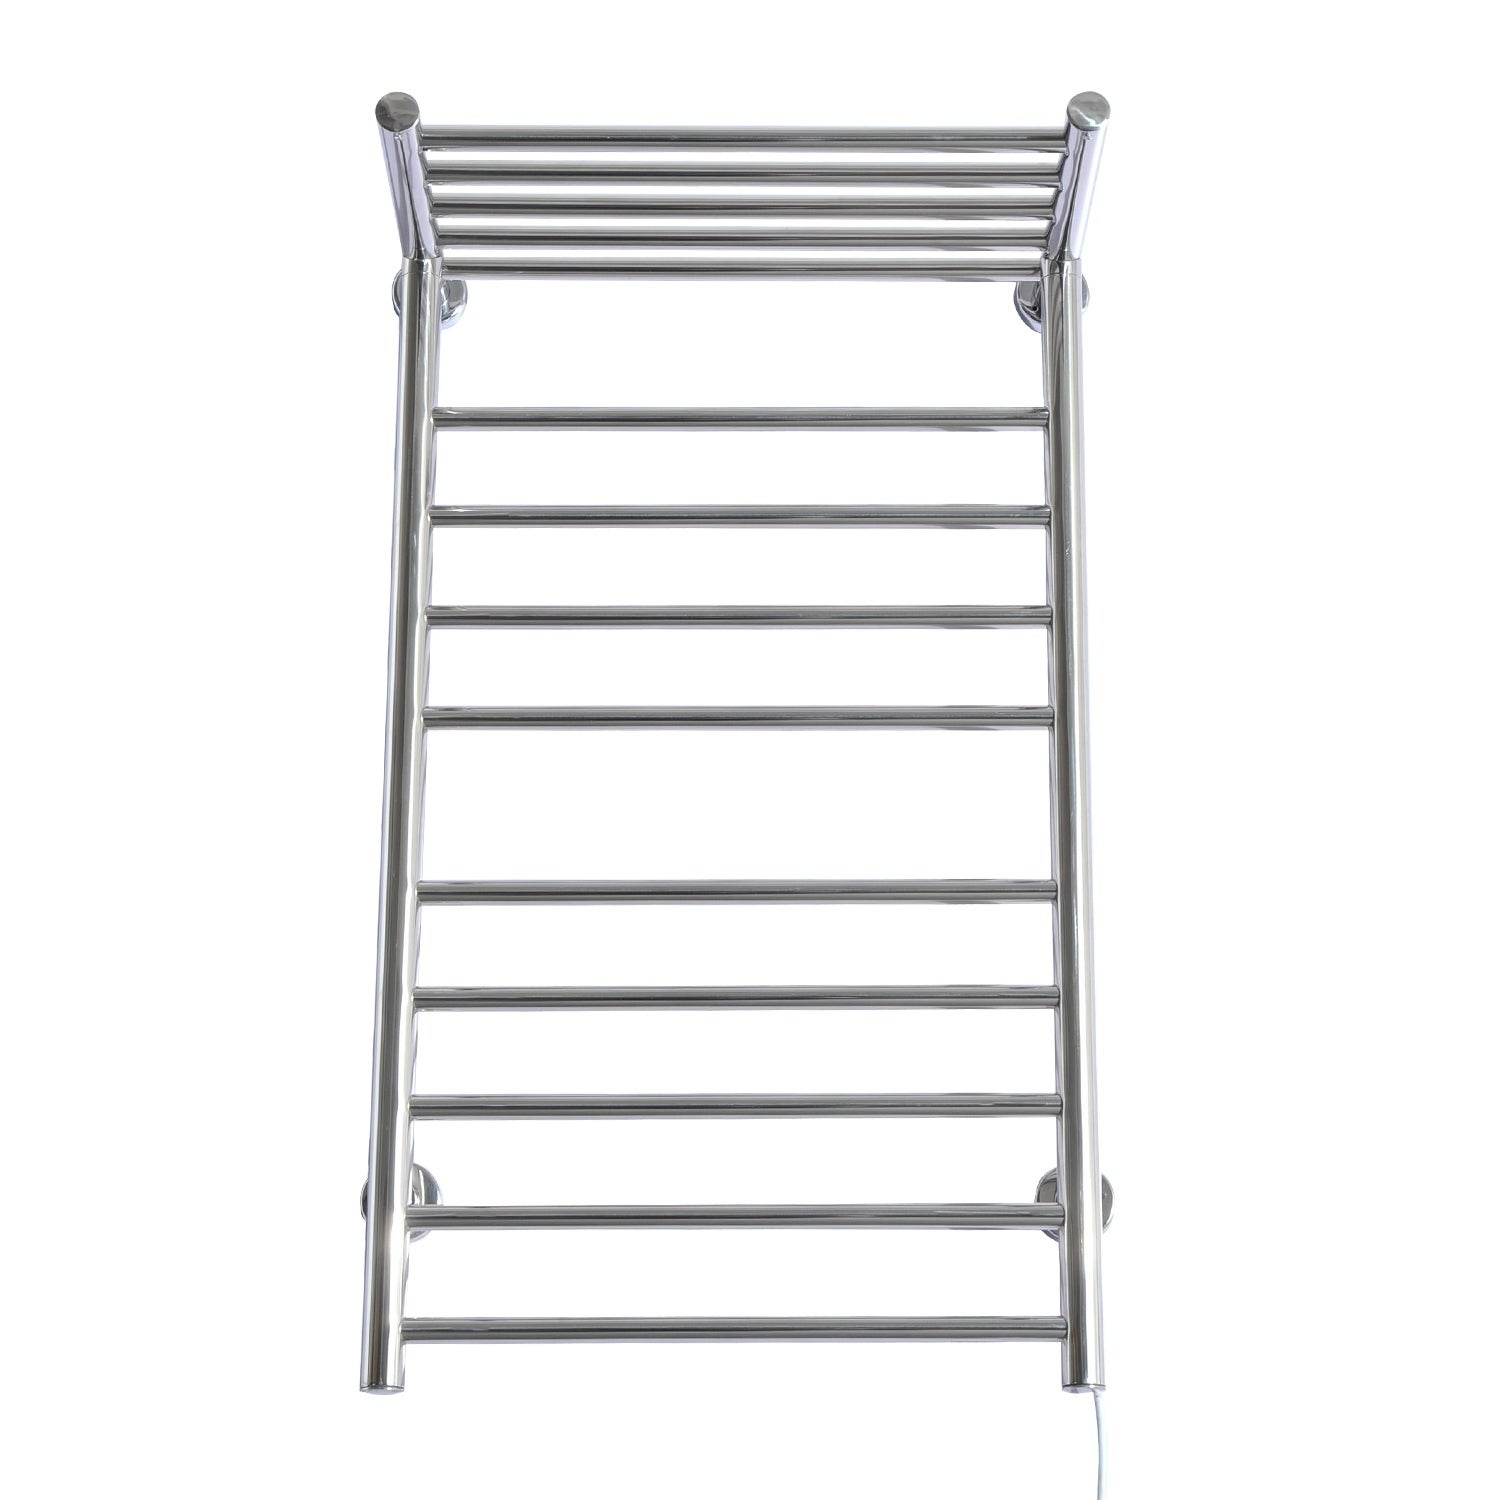 Homcom 9 Bar Stainless Steel Wall Mounted Heated Towel Warmer Rack With Shelf On Free Shipping Today 18004624